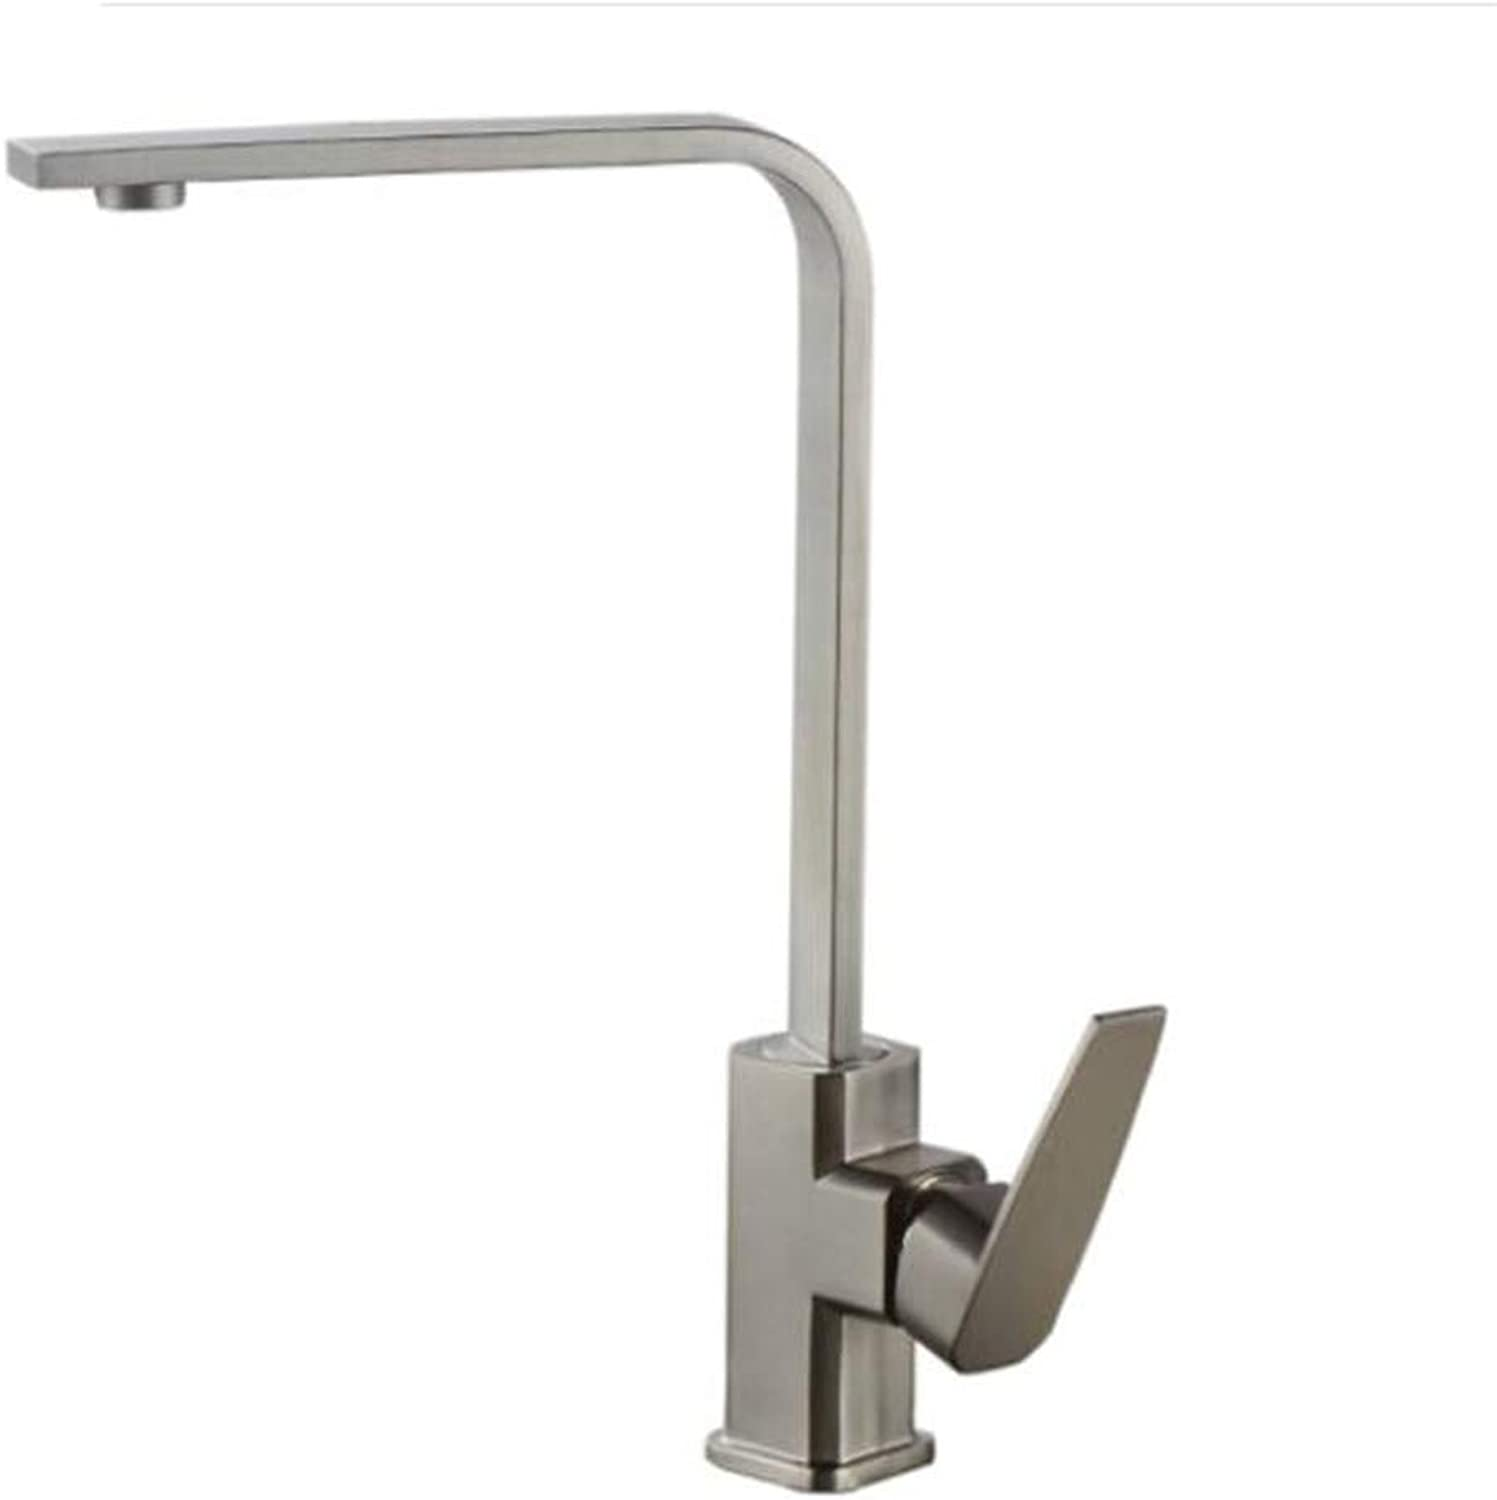 Bathroom Sink Basin Lever Mixer Tap redating Single Hole Cold and Hot Kitchen Sink Dish Pot Tap Wire Drawing Copper Section